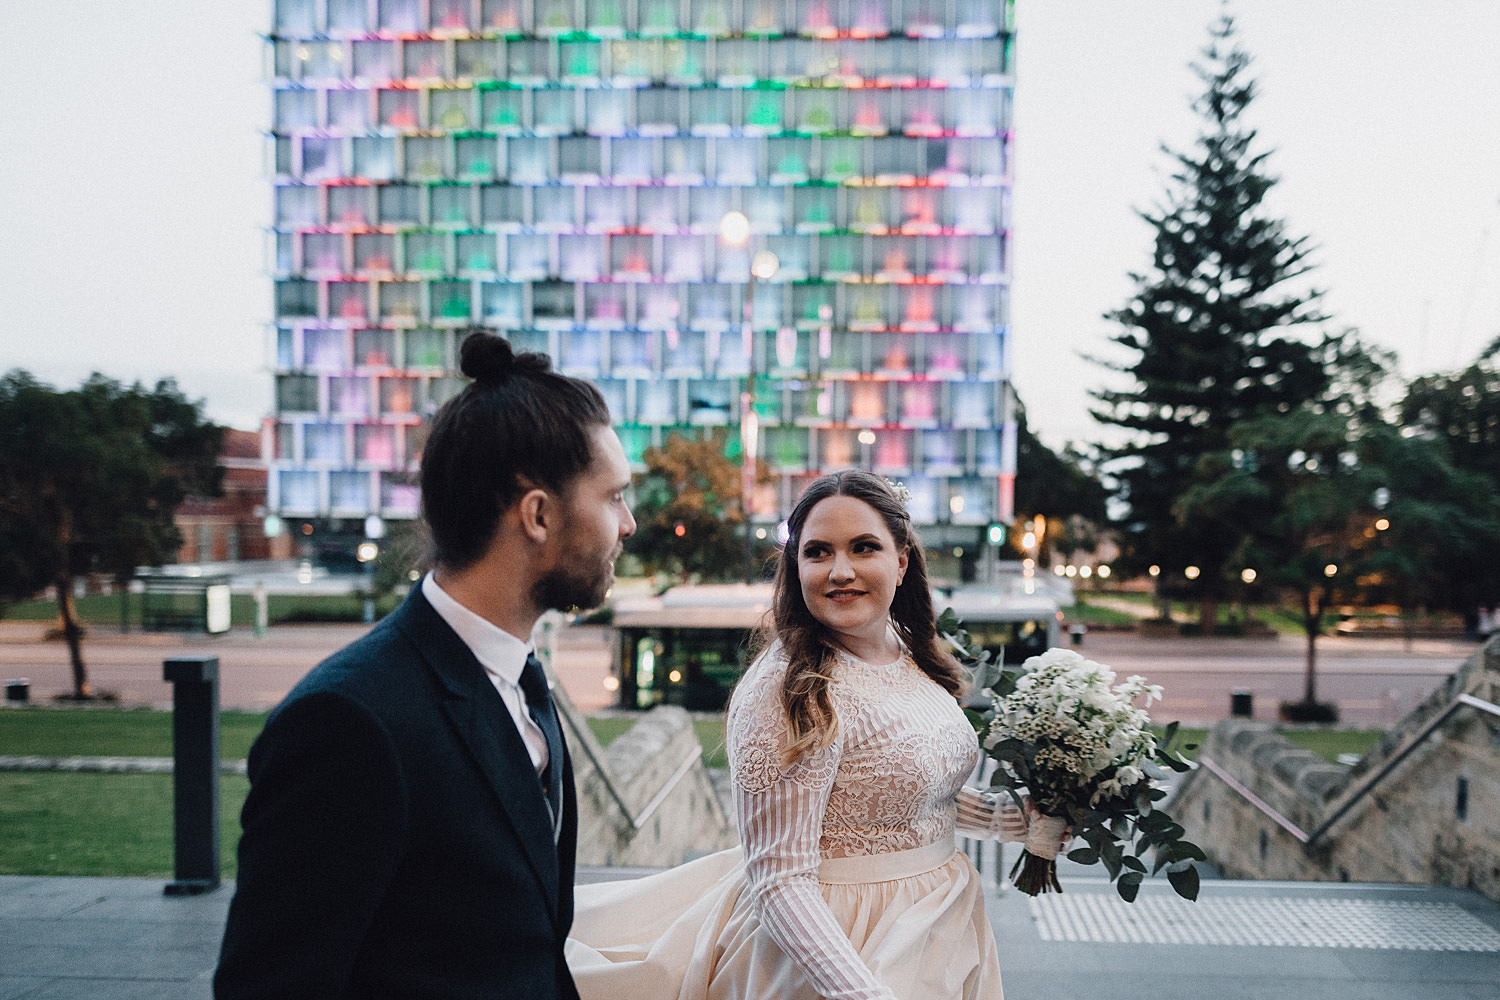 Rainbow Building Background Moment Wedding